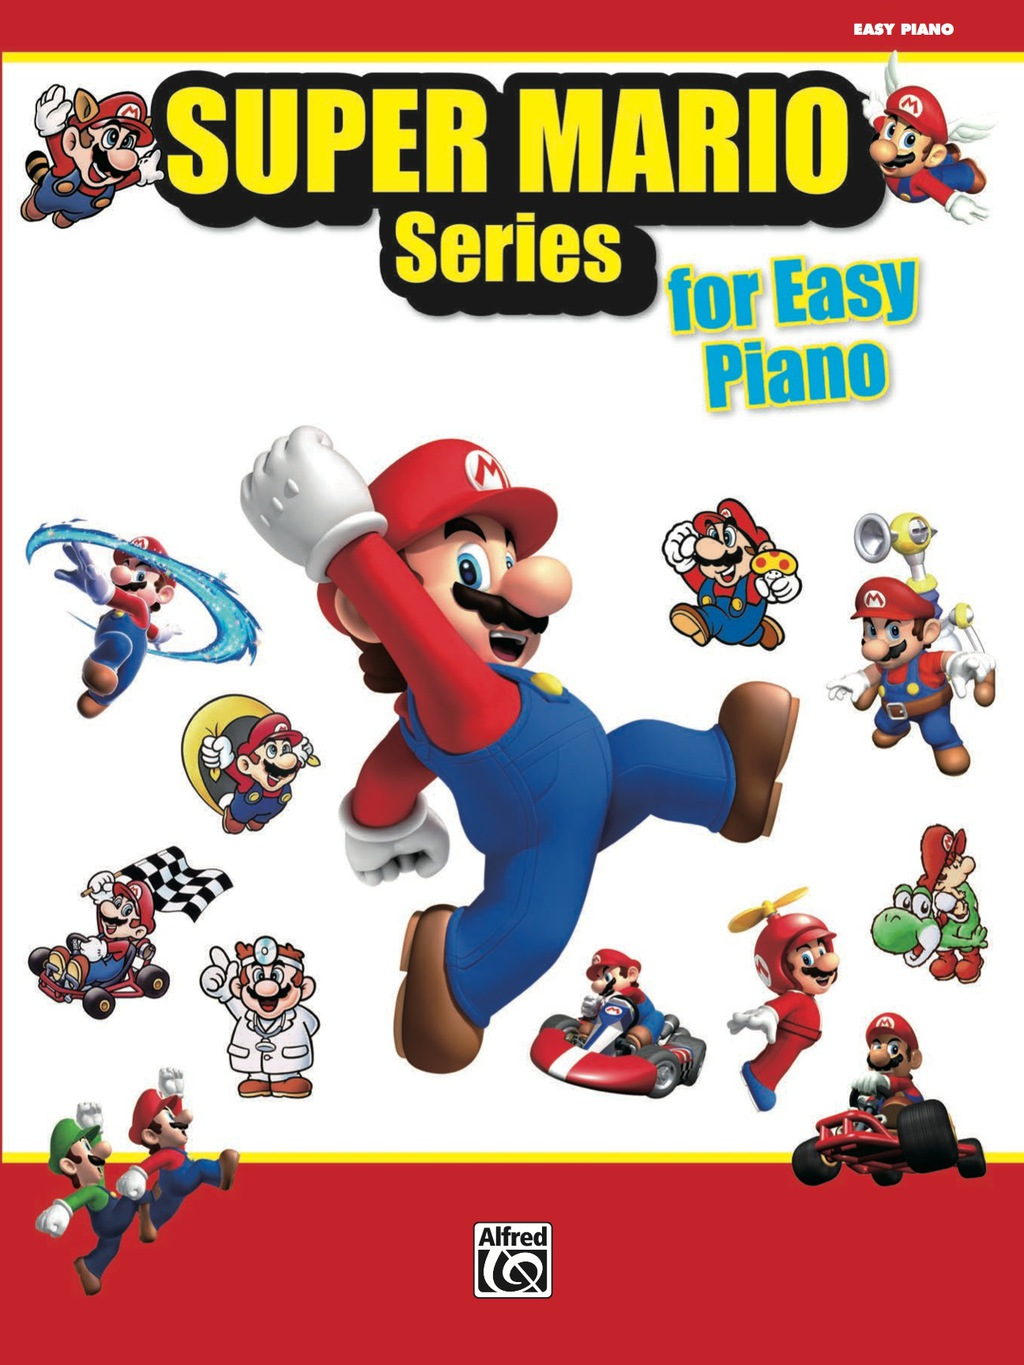 Super Mario Series For Easy Piano: 34 Themes From The Nintendo® Video Game Collection Arranged For Easy Piano (ebook)